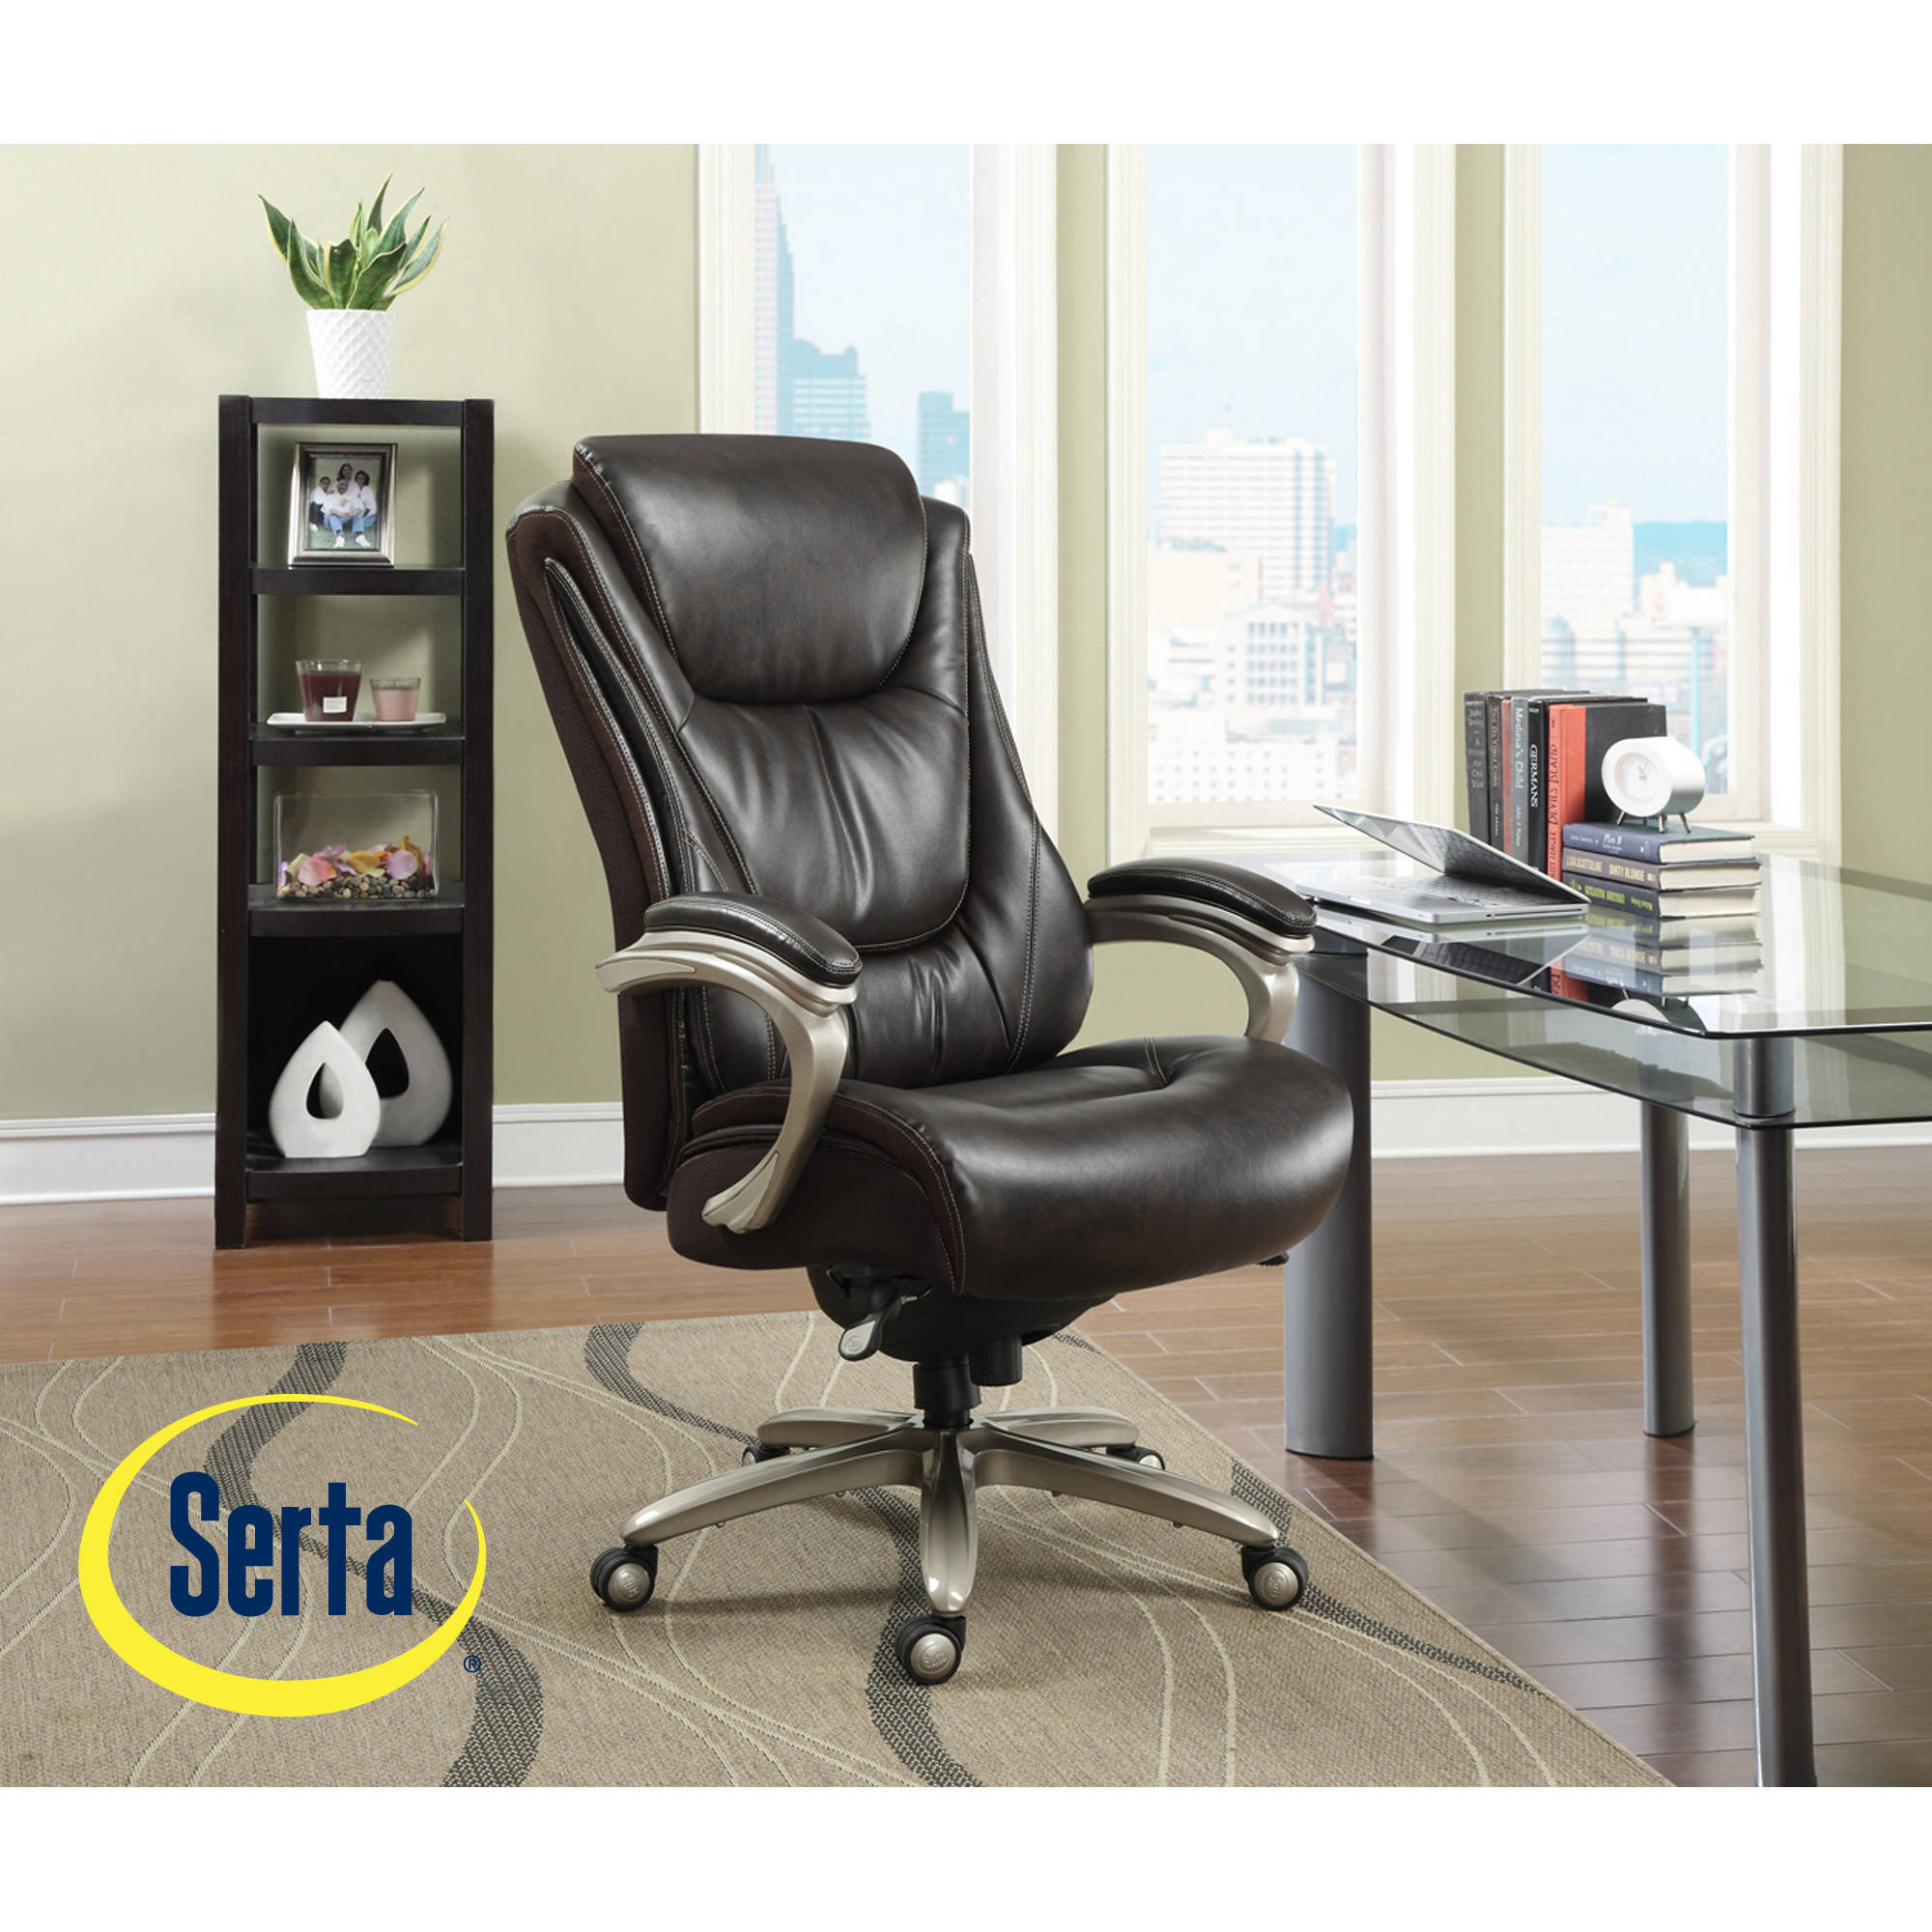 serta big and tall smart layers executive office chair, harmony